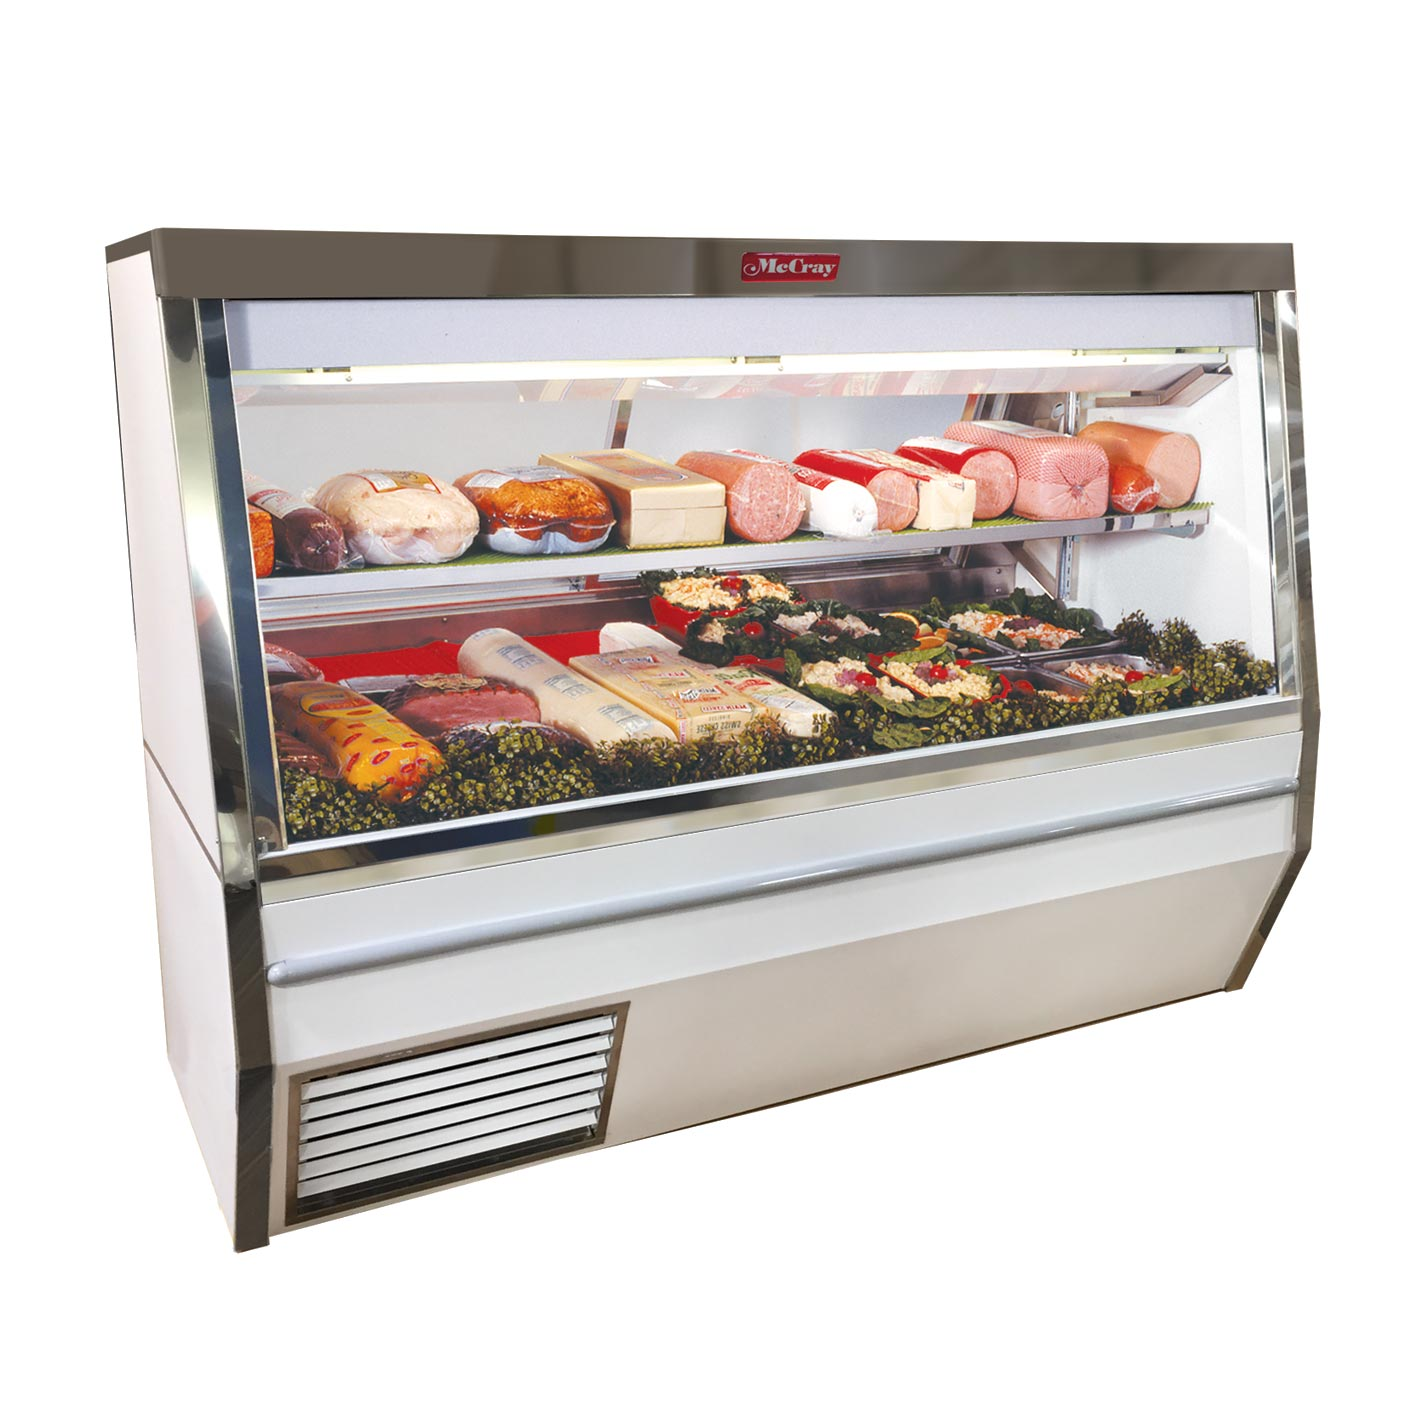 Howard-McCray R-CDS34N-12-LED display case, refrigerated deli